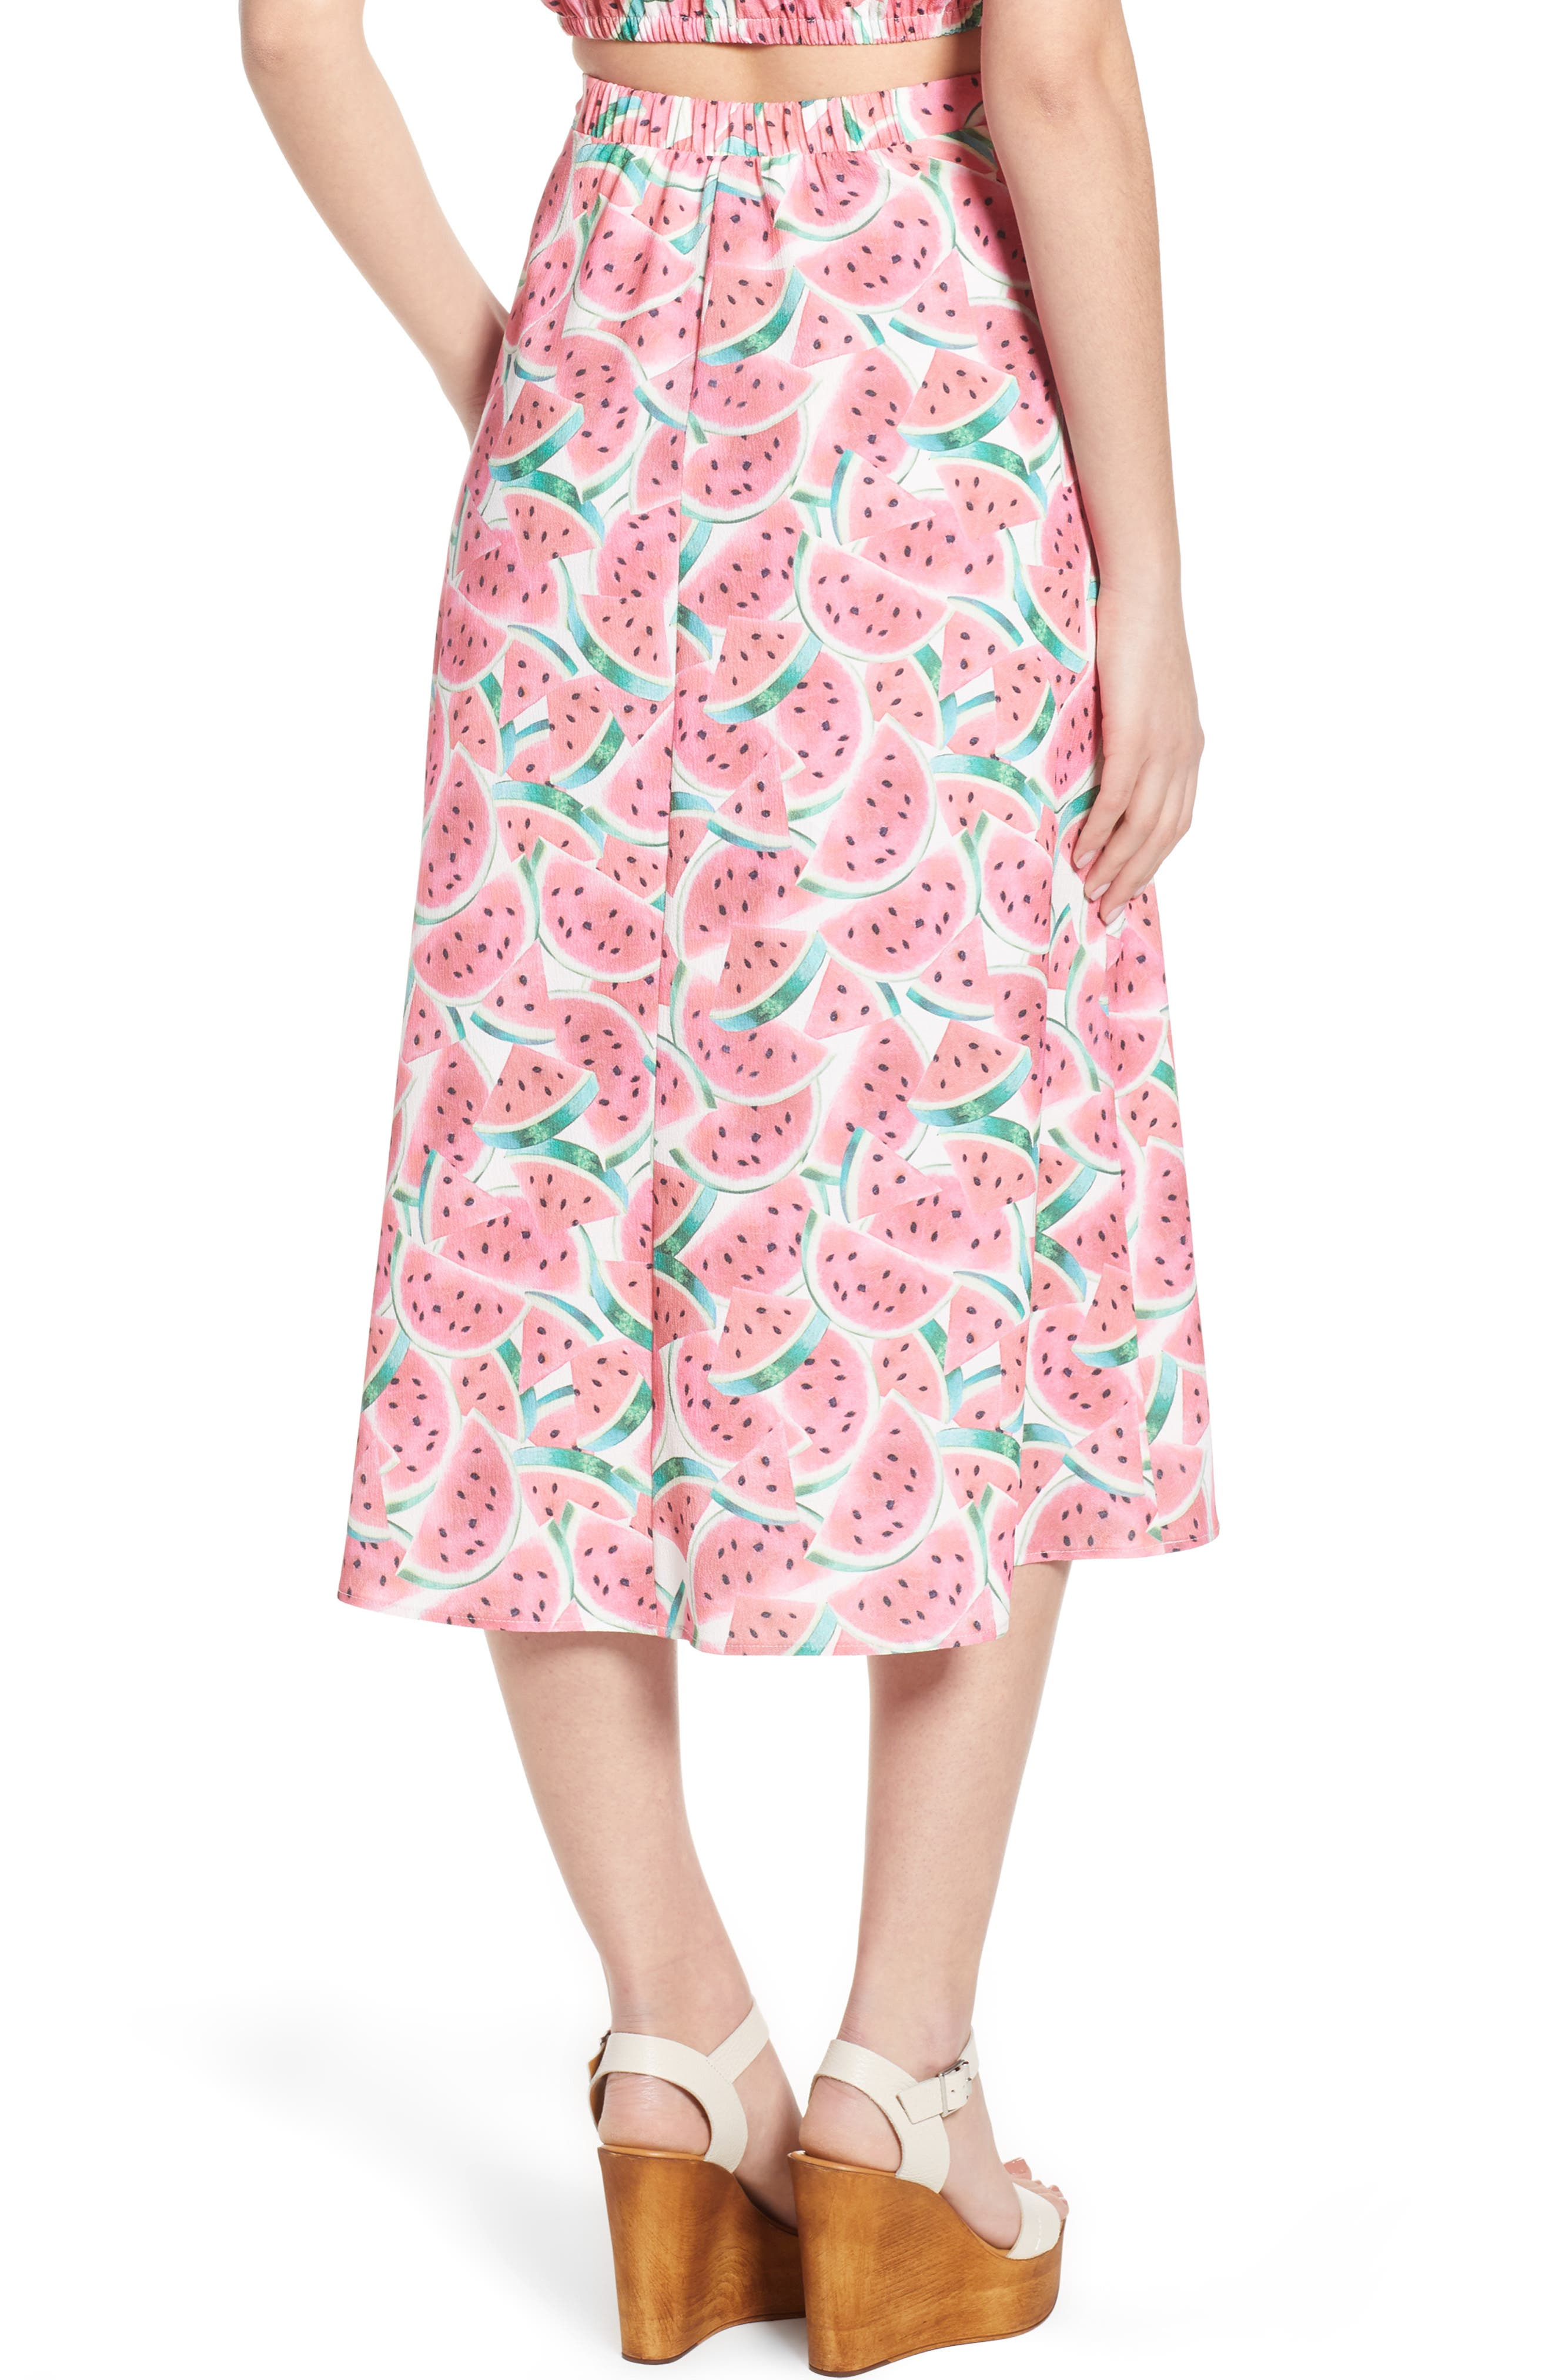 Flirt Midi Skirt,                             Alternate thumbnail 2, color,                             650